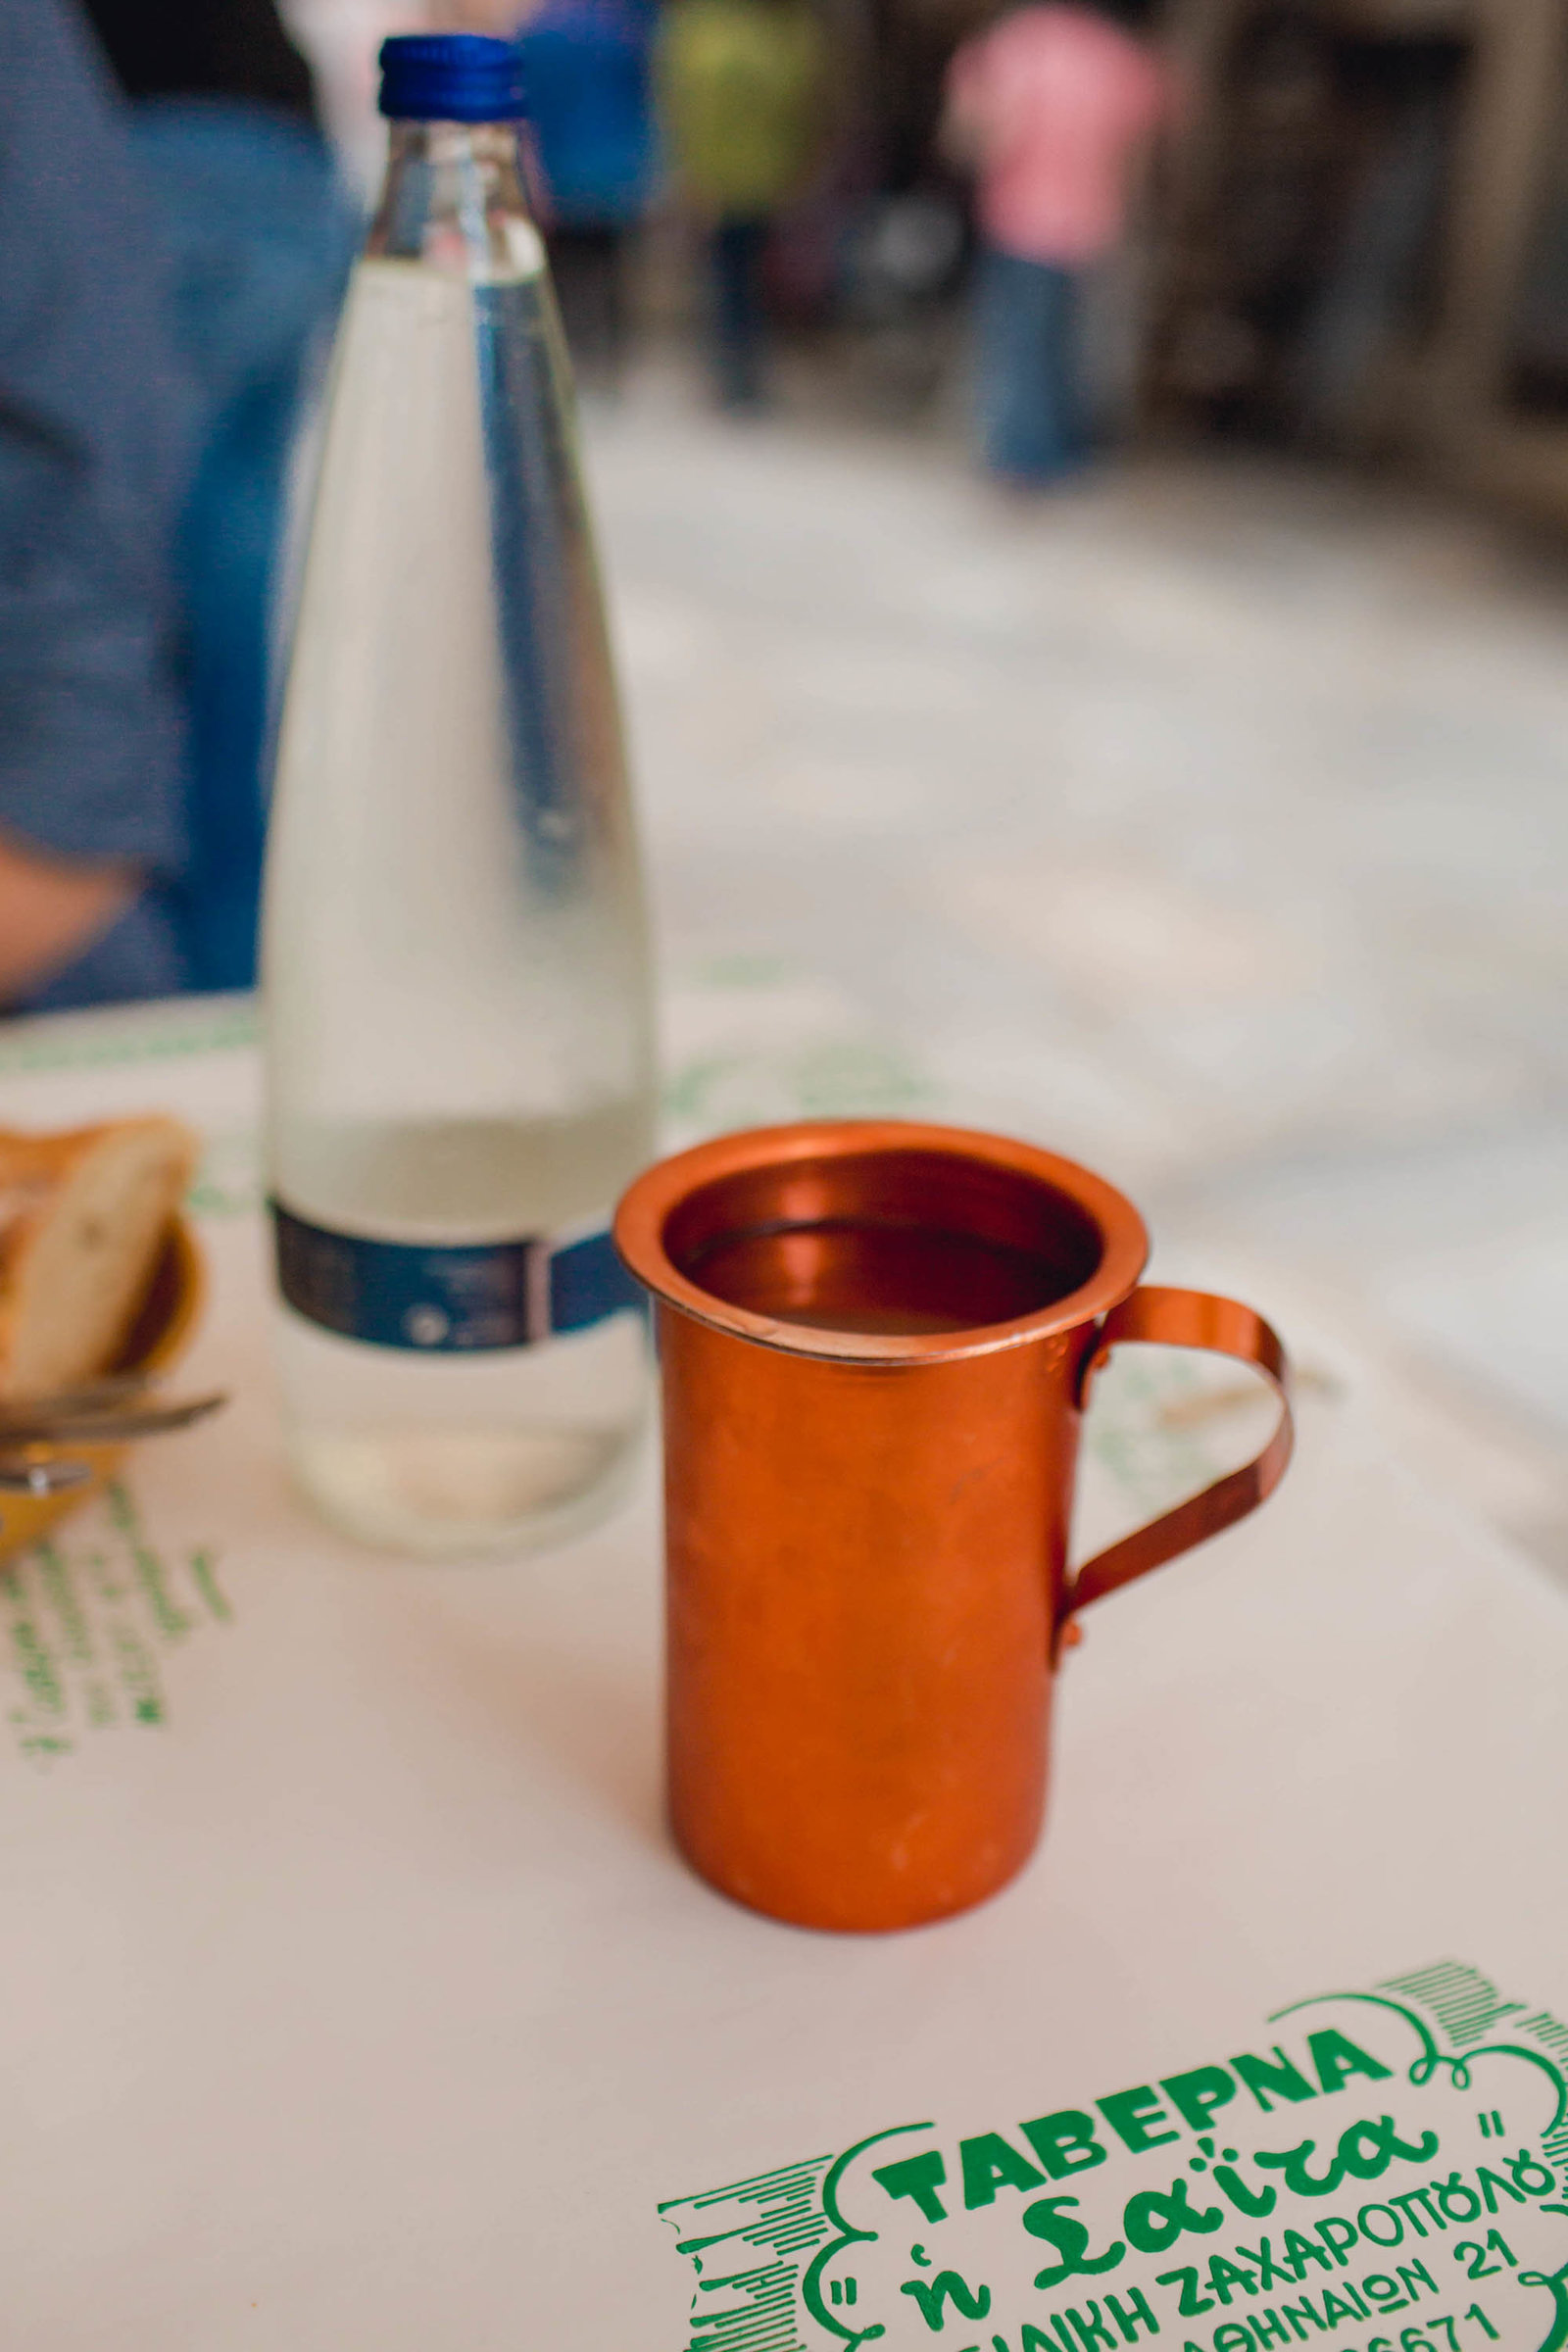 travel-food-editorial-wine-drink-copper-mug-athens-greece-kate-timbers-photography188